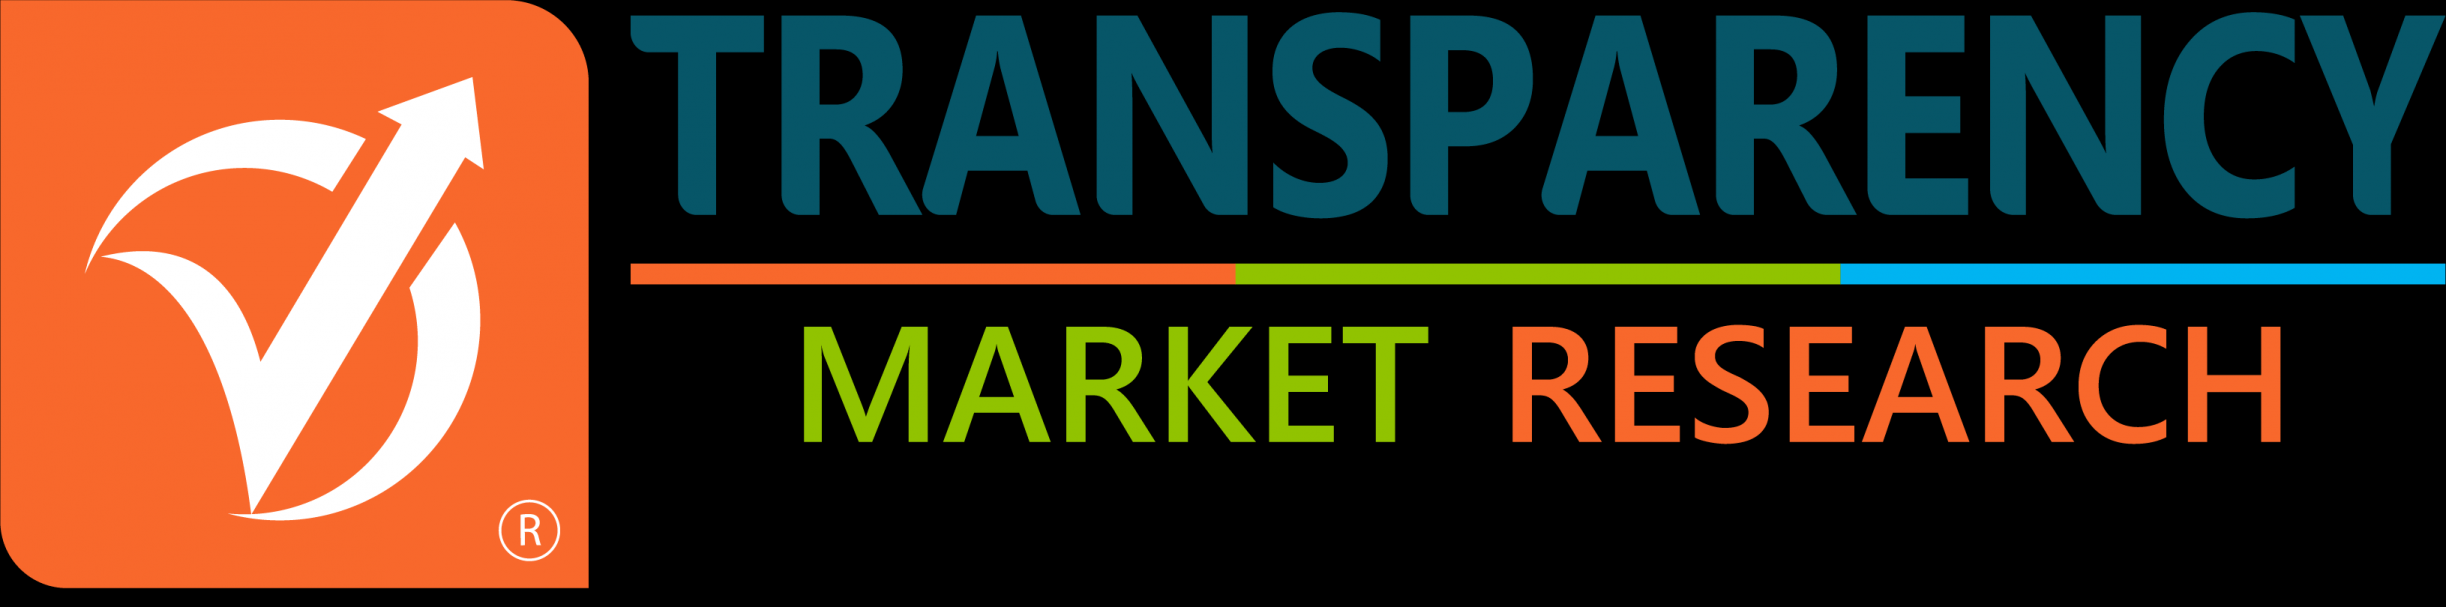 https://www.transparencymarketresearch.com/assets/webstyle/images/tmr-logo.png